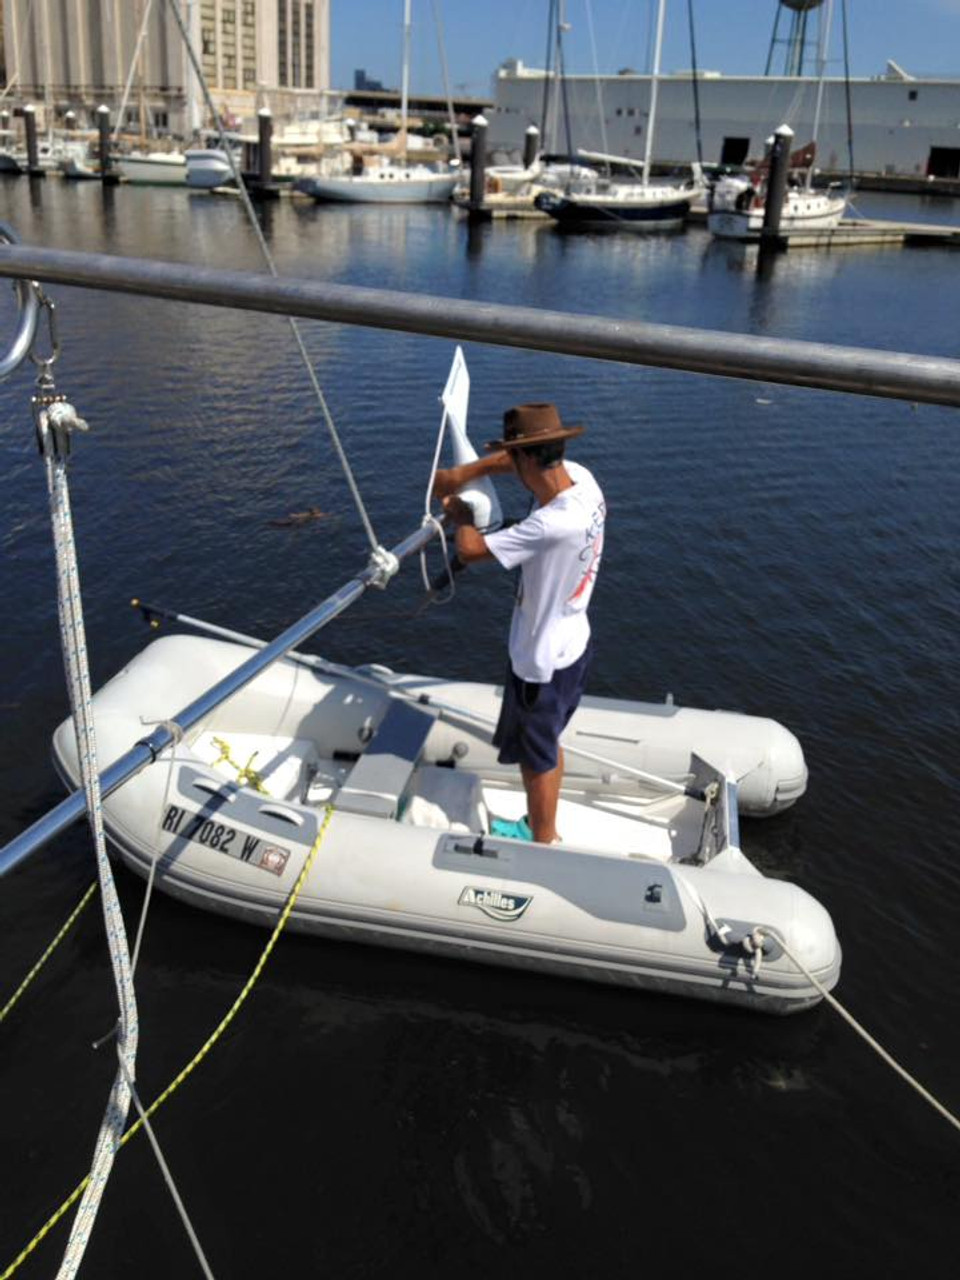 Pivoting pole kit mounted on the transom allows access to wind generator from the dinghy or dock.  (Courtesy of Mitzi and Alain Gimenez on S/V Holiday)